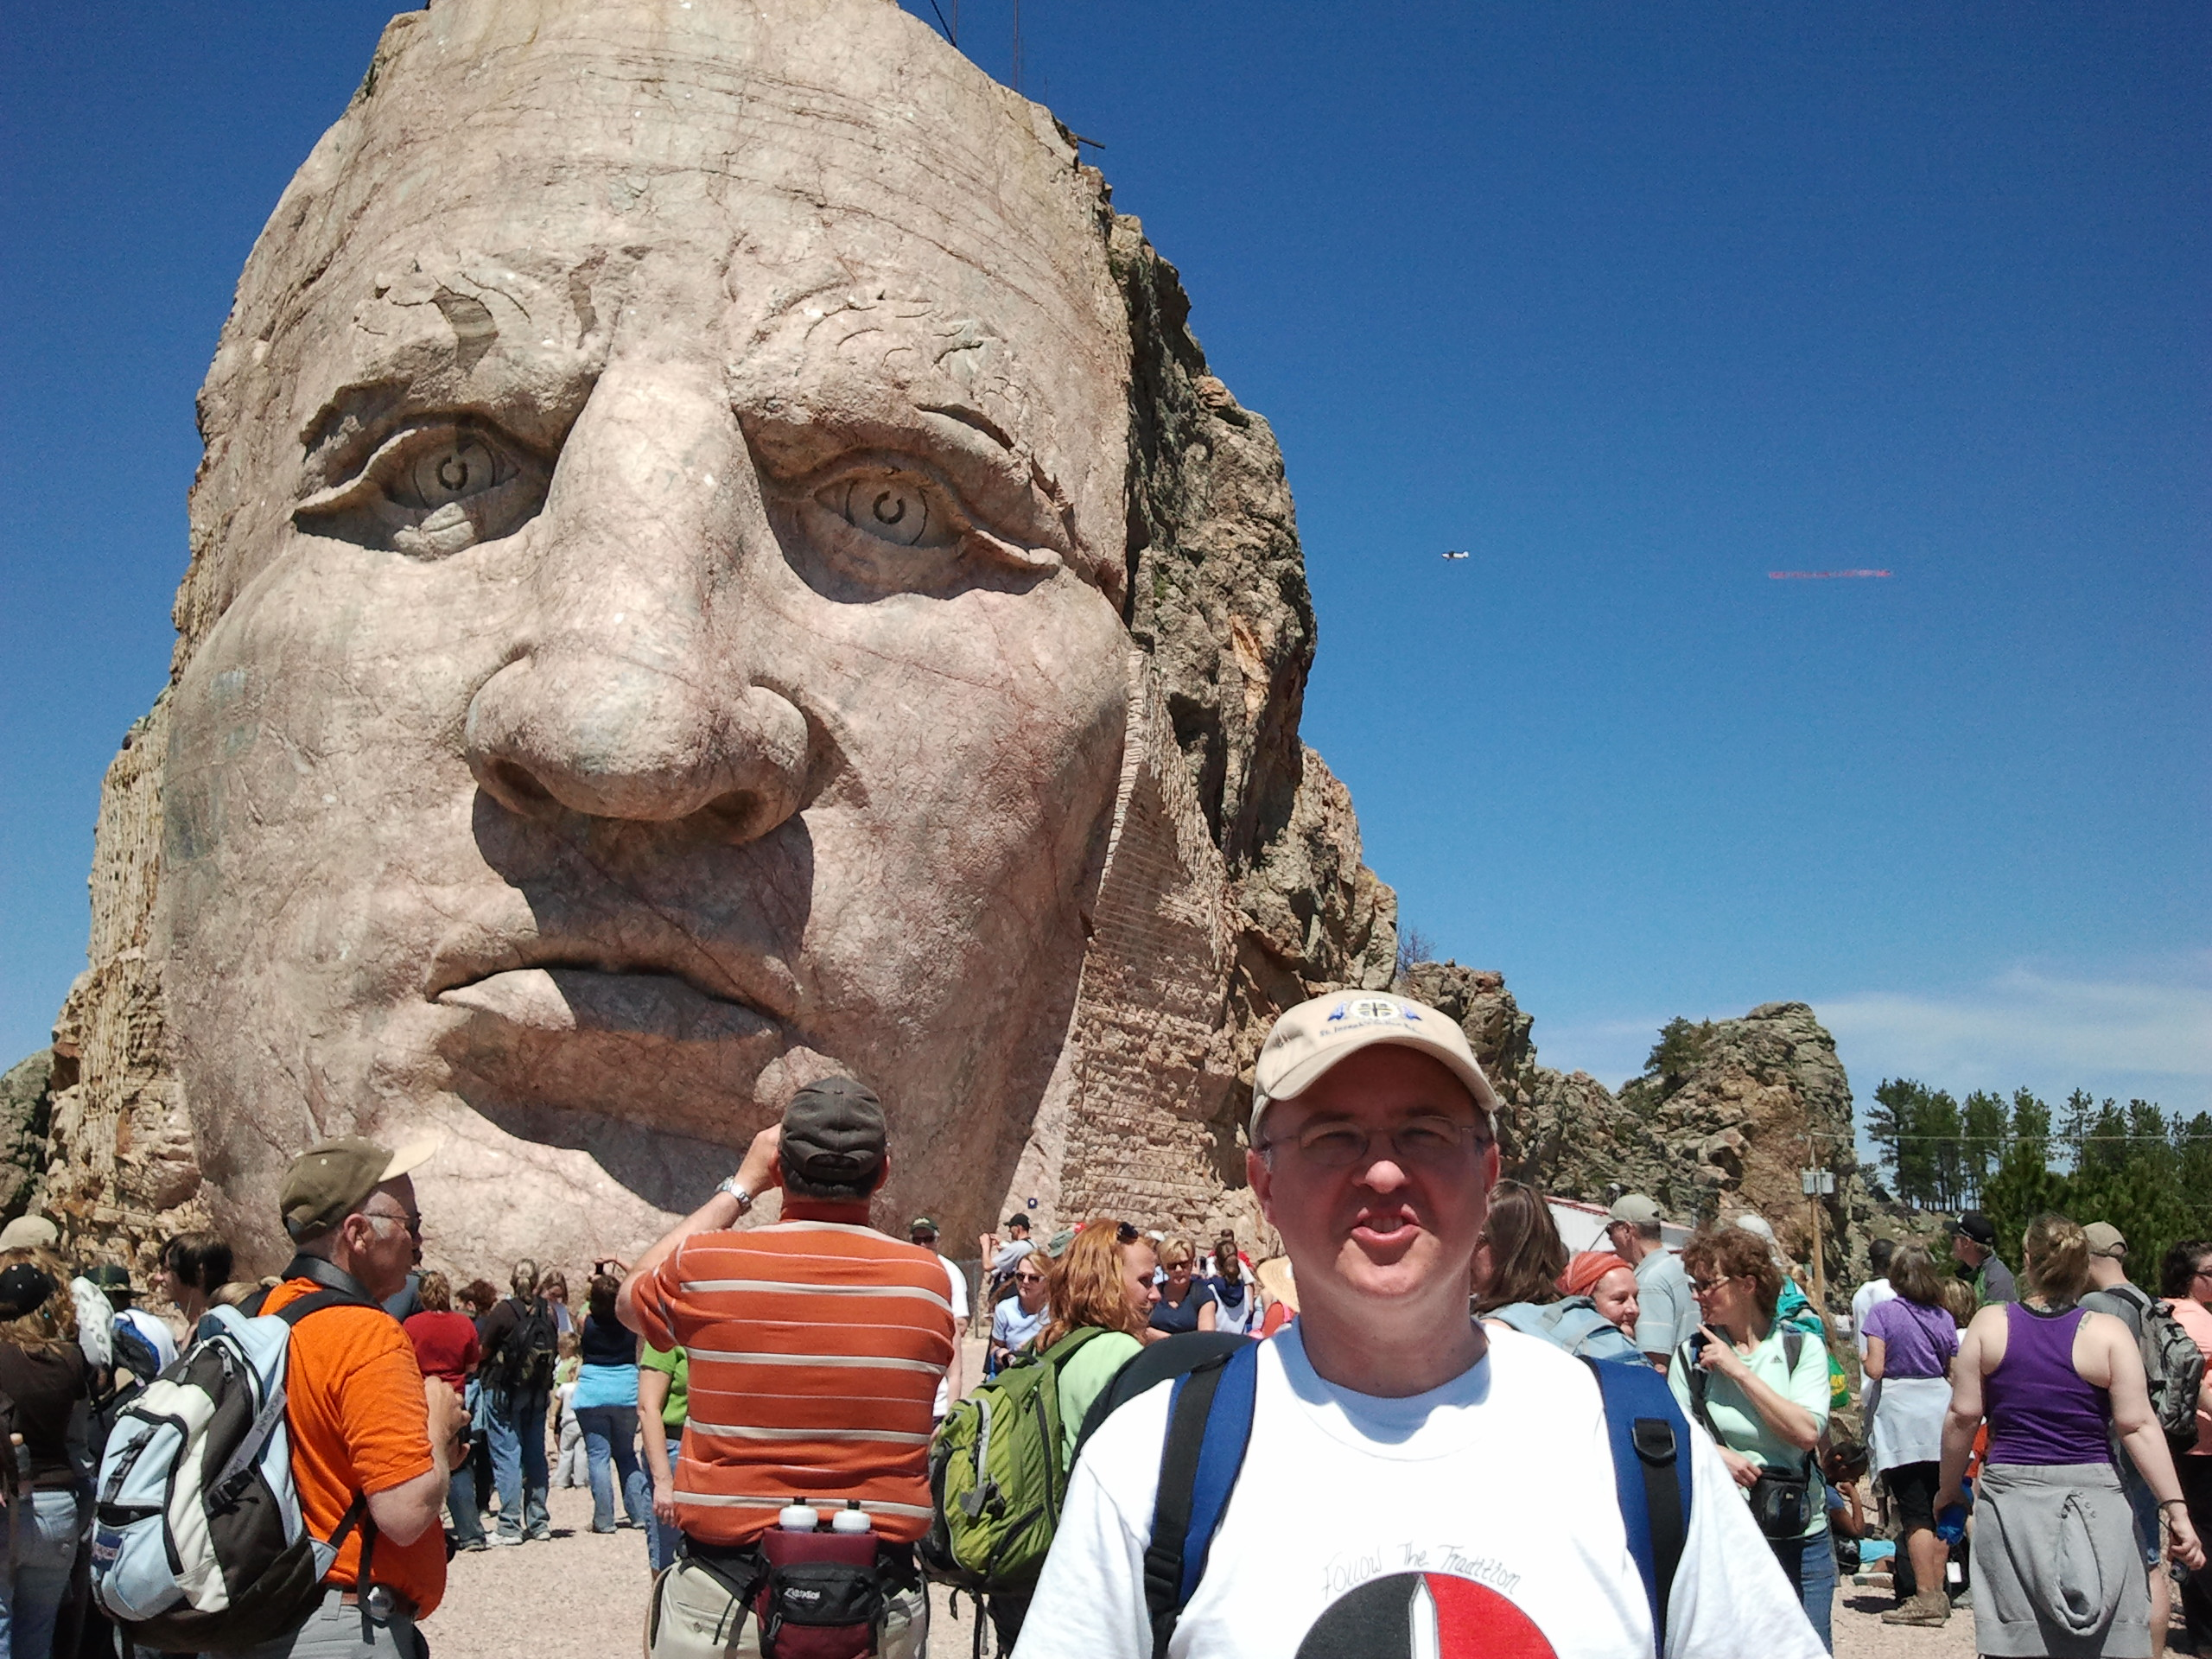 Fr. Steve at Crazy Horse Monument.